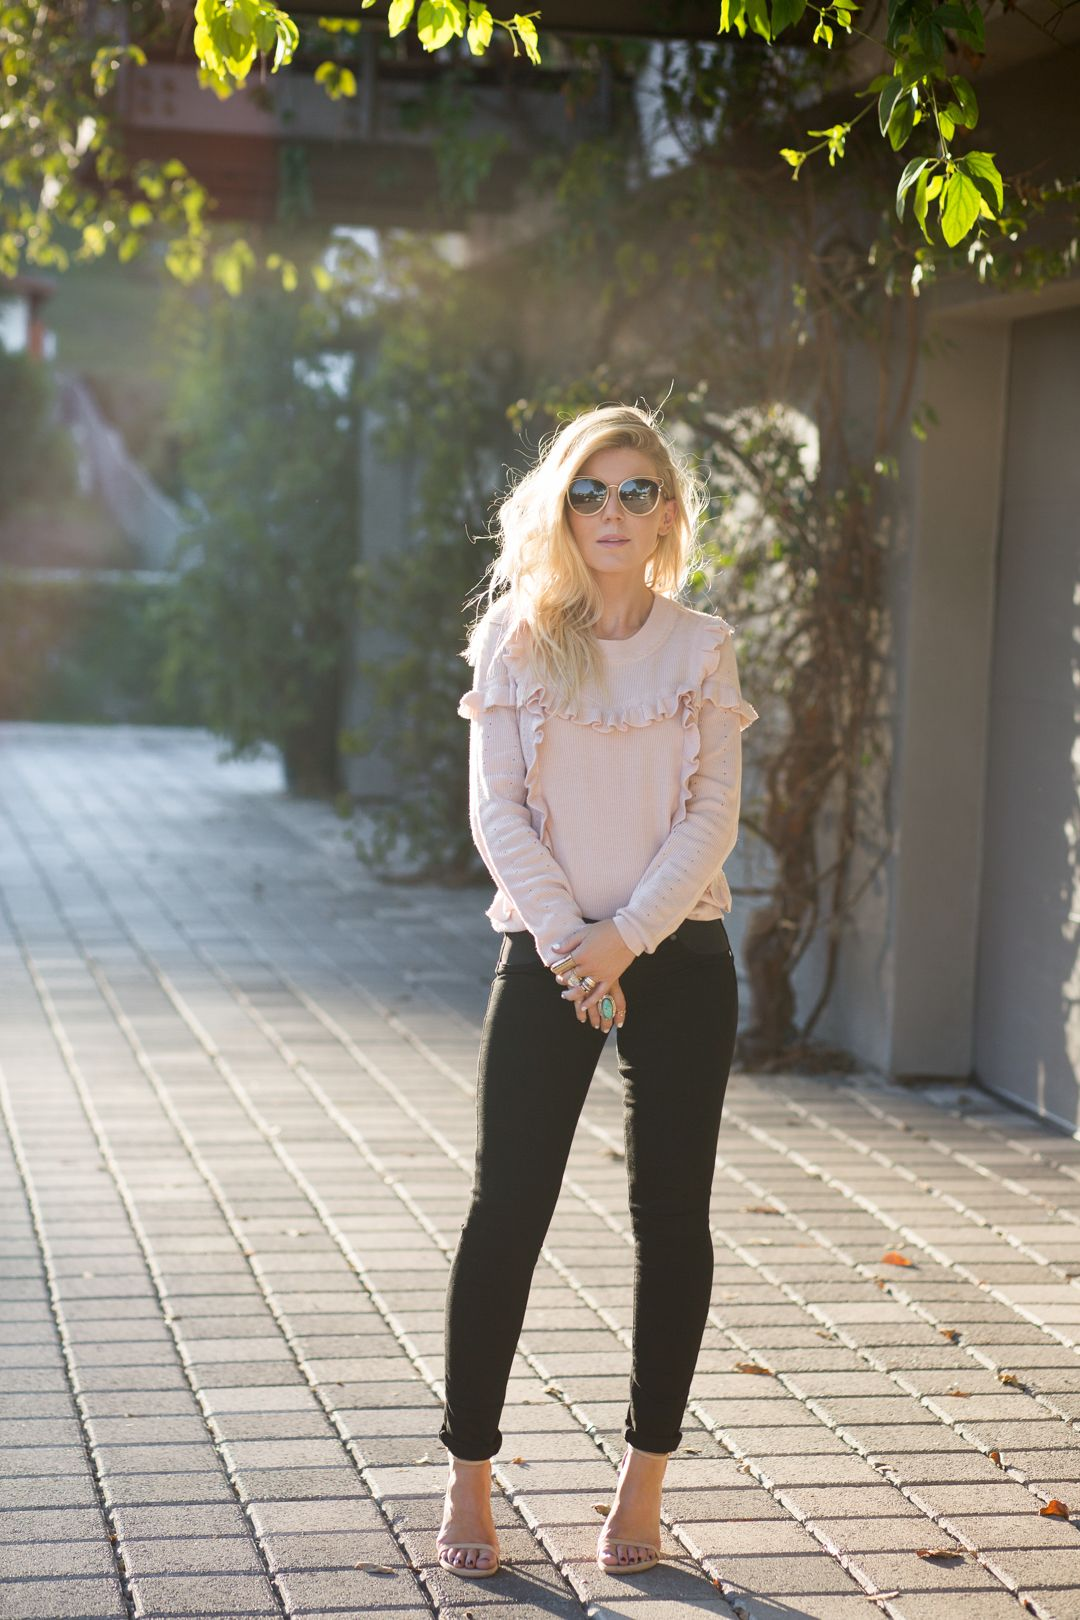 Lisa Allen of LunchPails and Lipstick wearing a pink ruffle sweater from Topsop with paige jeans and stuart weitzman heels